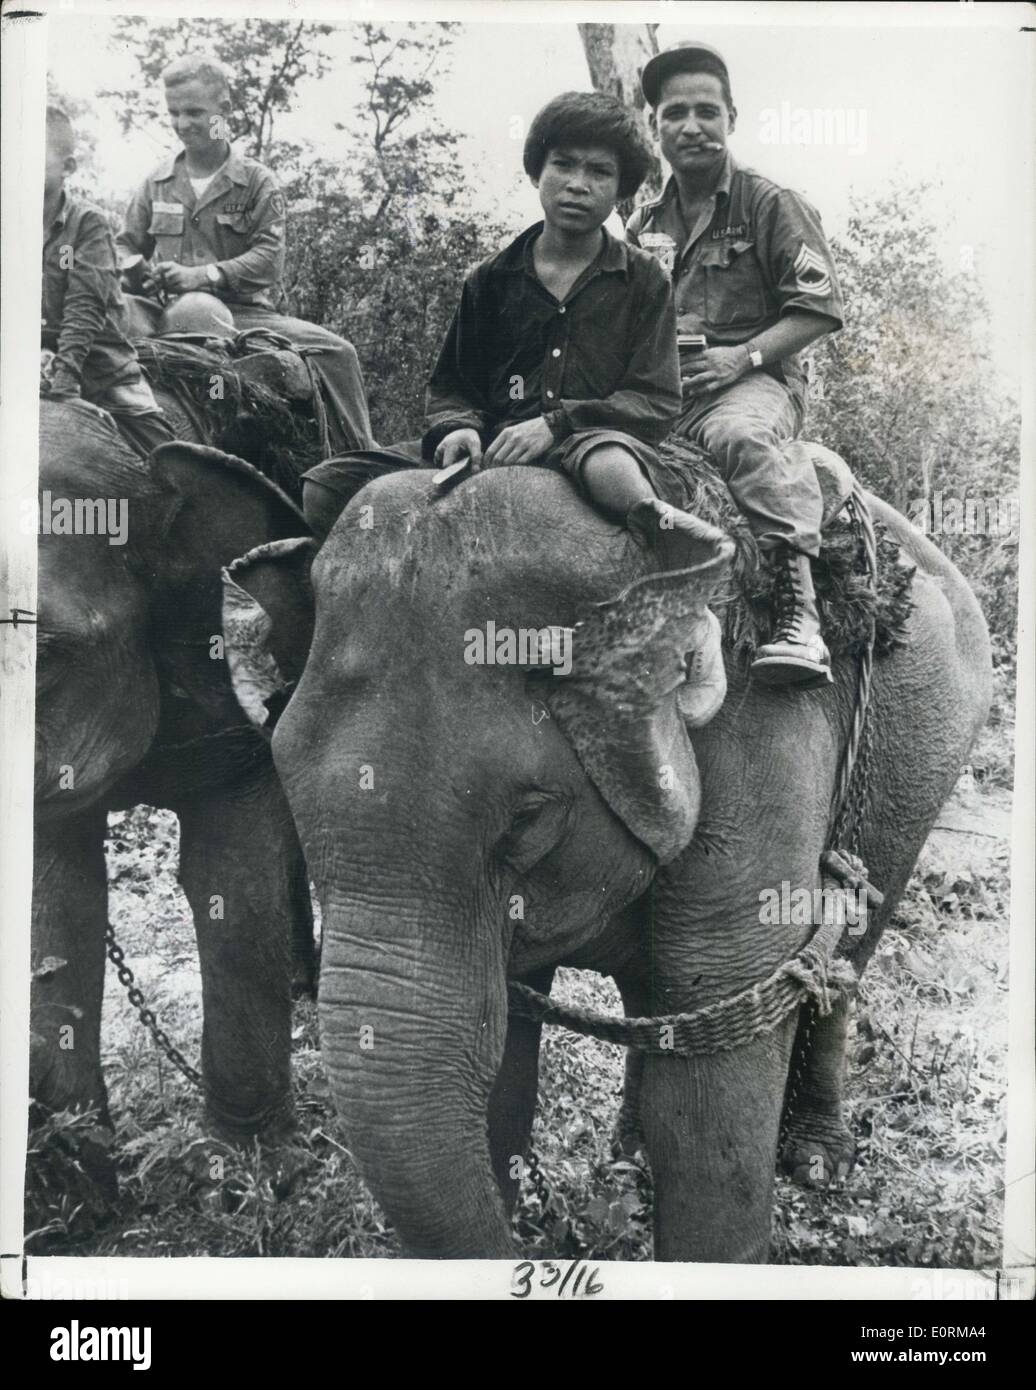 Jan 1, 1960 - m Hawai to The Green Berets the Juxtaposition of Warfare Infantry Encounter Dsnakes, dubious Buddhist homes. Men of the 2nd Infantry Battle group, U.S. Navy, have been flown from ''(Illegible)'' to the jungles rendervous west of Korsat on the Thai-Las border, following a developments in Laos, ''(Illegible)'' tly. There , they ''(Illegible)'' combating the intense heost, adly ekes and dubious ''(Illegible)'' nist monks in safforn robes o may well be sending i ''(Illegible)'' igence reports to the emy on troop movements ''(Illegible)'' upply estimates - Stock Image